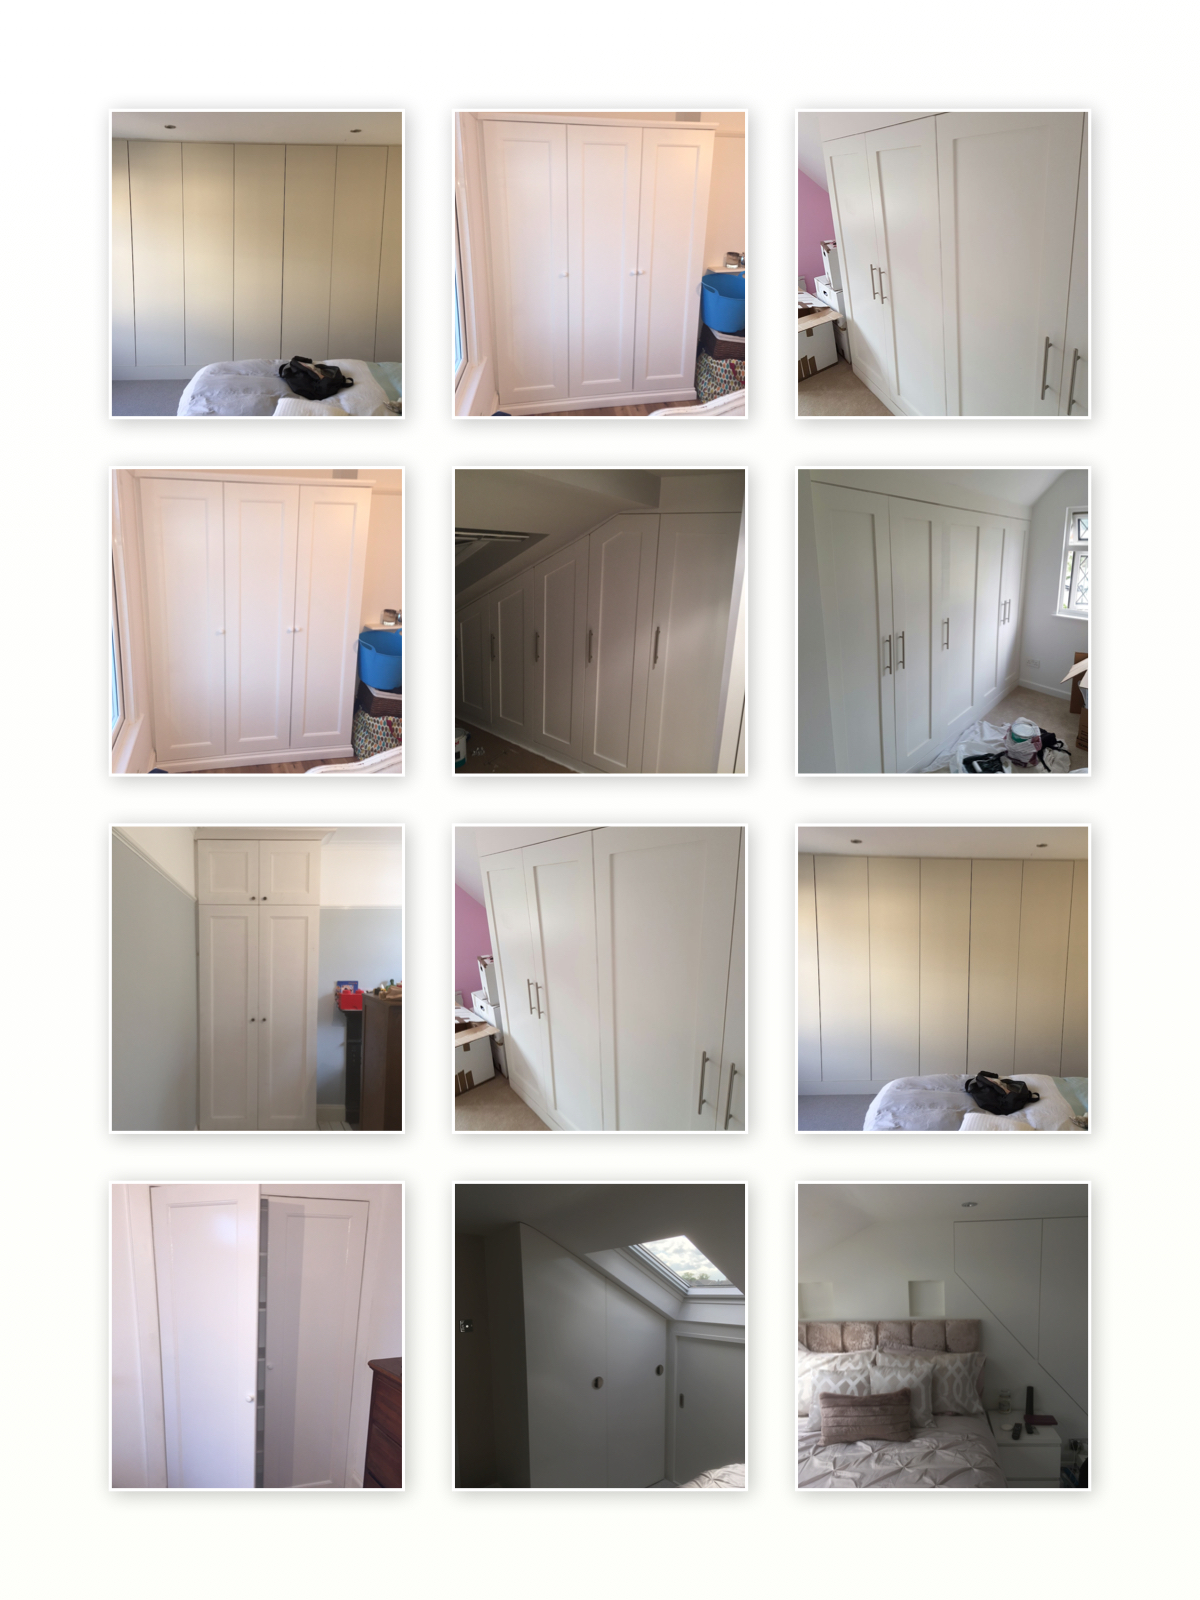 Wardrobes in West Norwood, Forest Hill, Honor Oak, Crystal Palace, Brockley, Bromley, South Norwood, Croydon and South East London